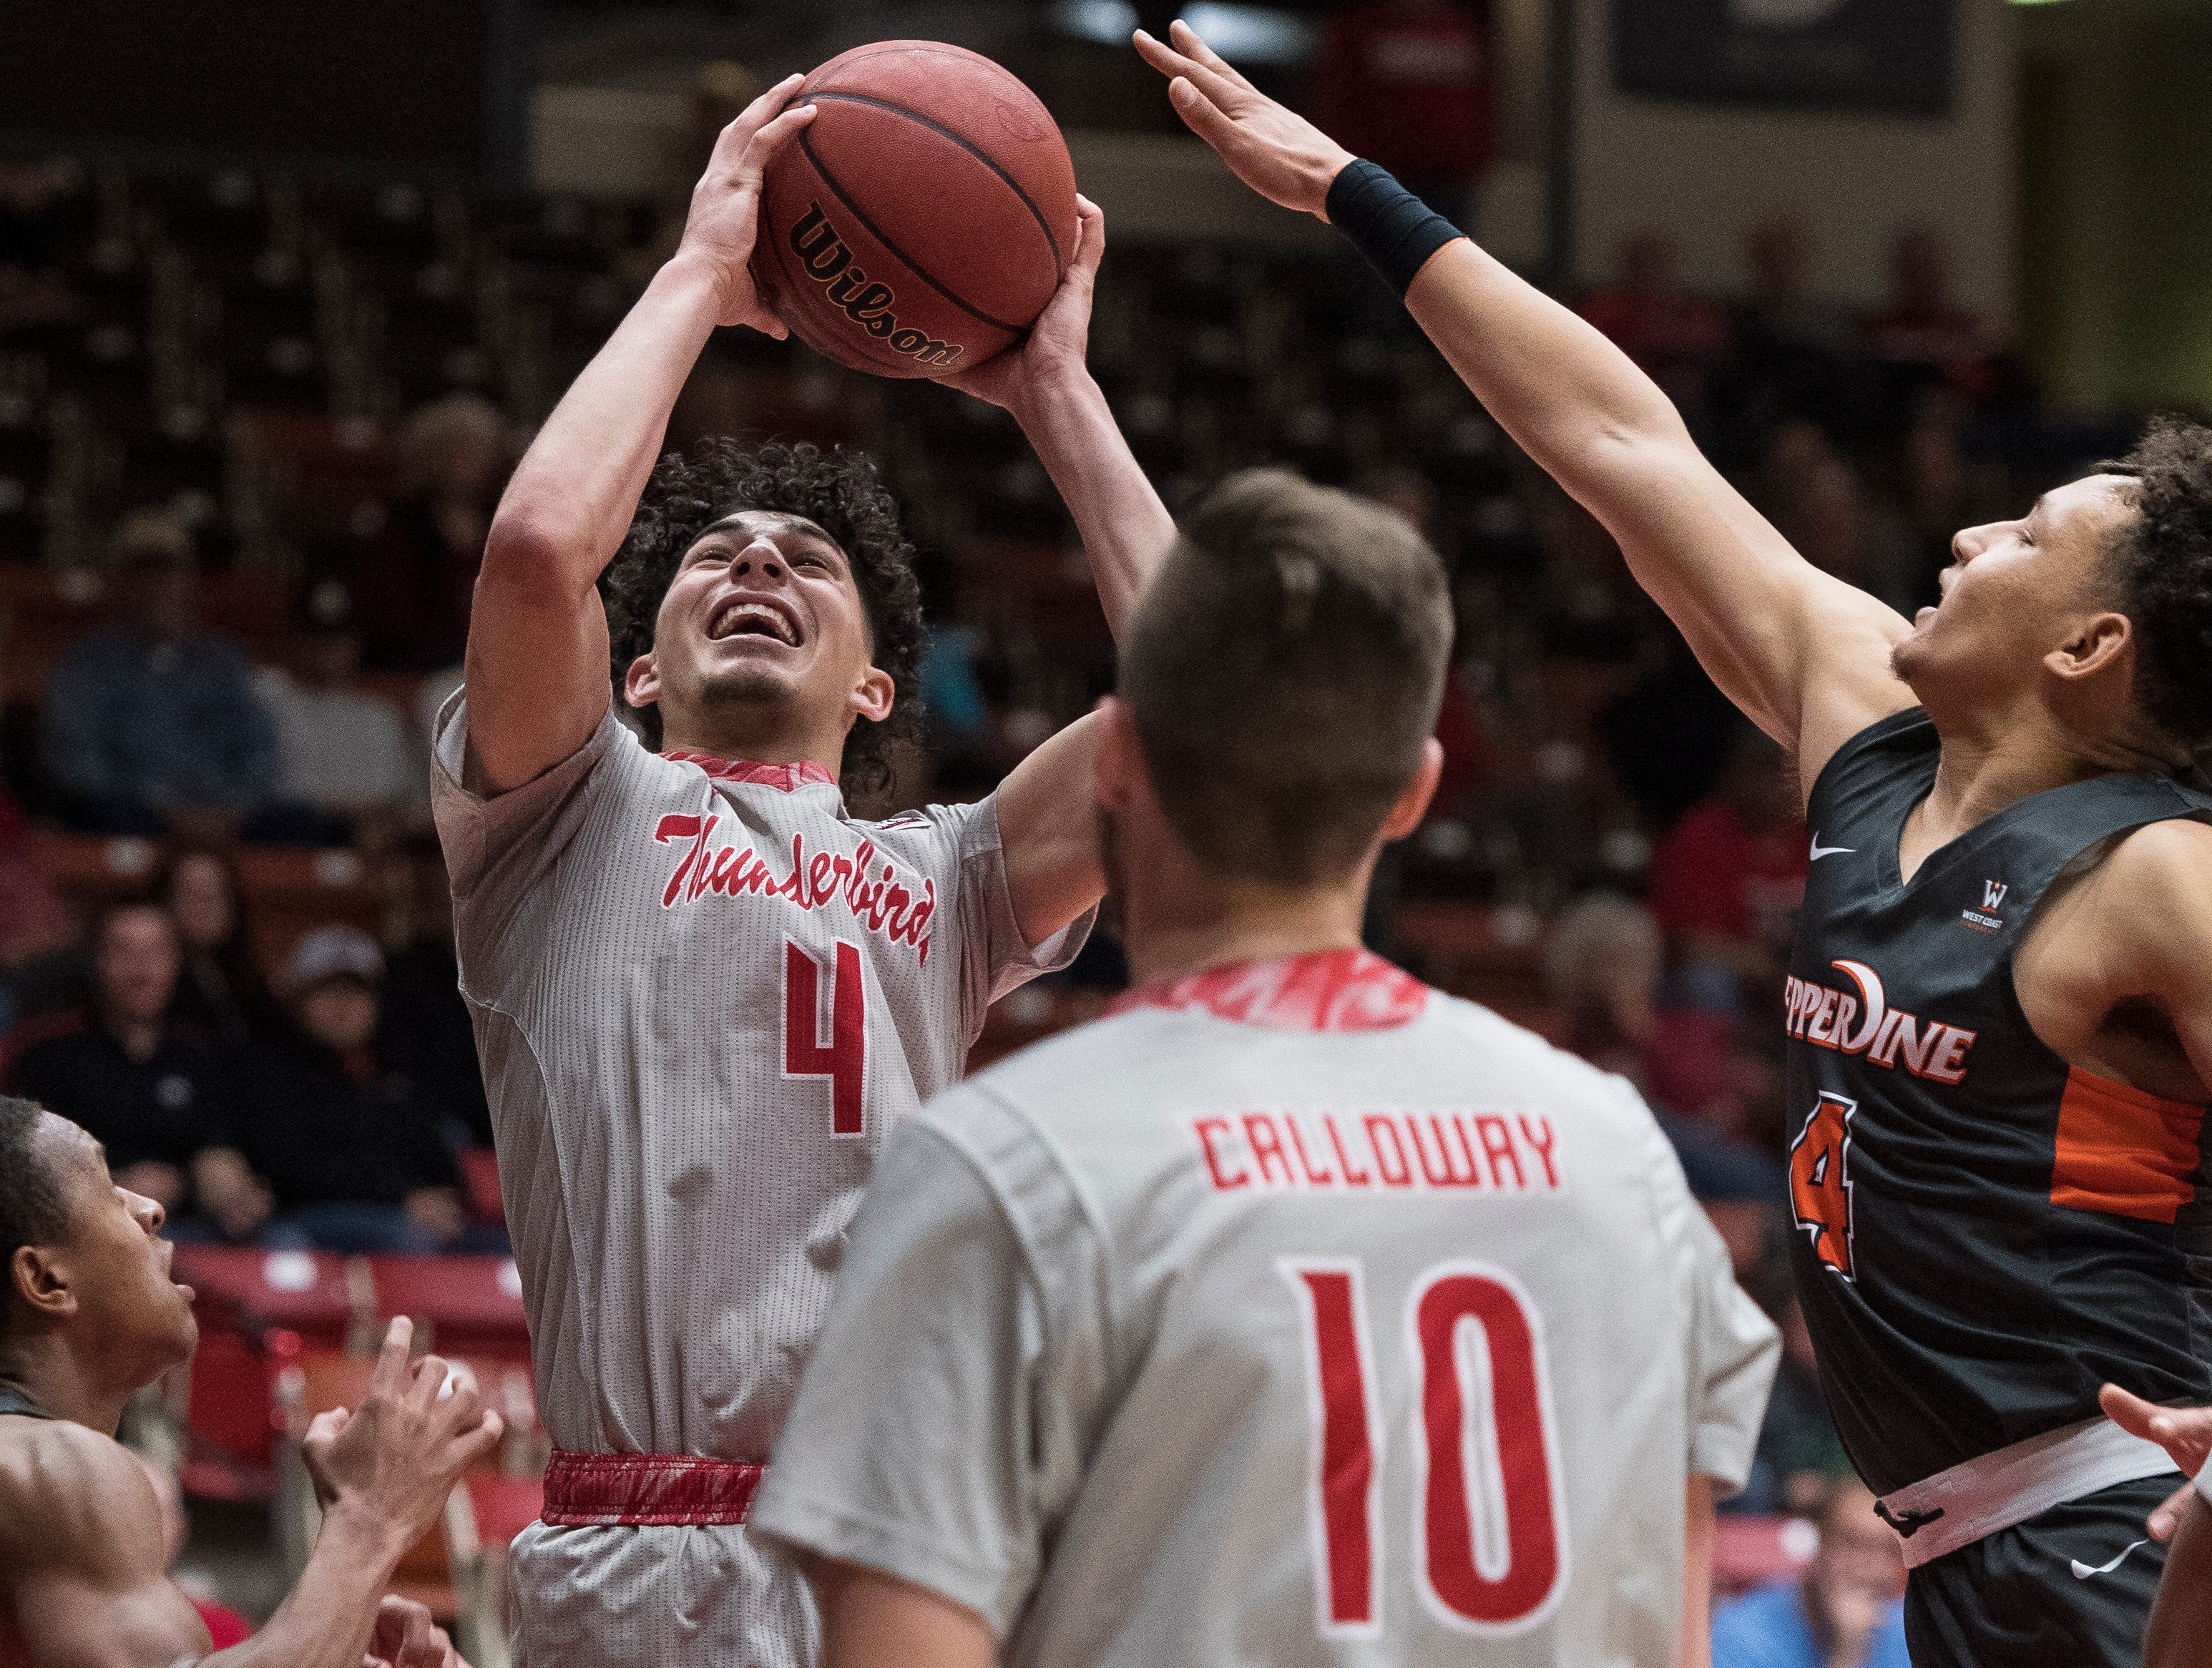 Southern Utah University sophomore Dre Marin (4) takes a shot against Pepperdine University in the America First Event Center Saturday, December 15, 2018. SUU won in overtime, 78-69.